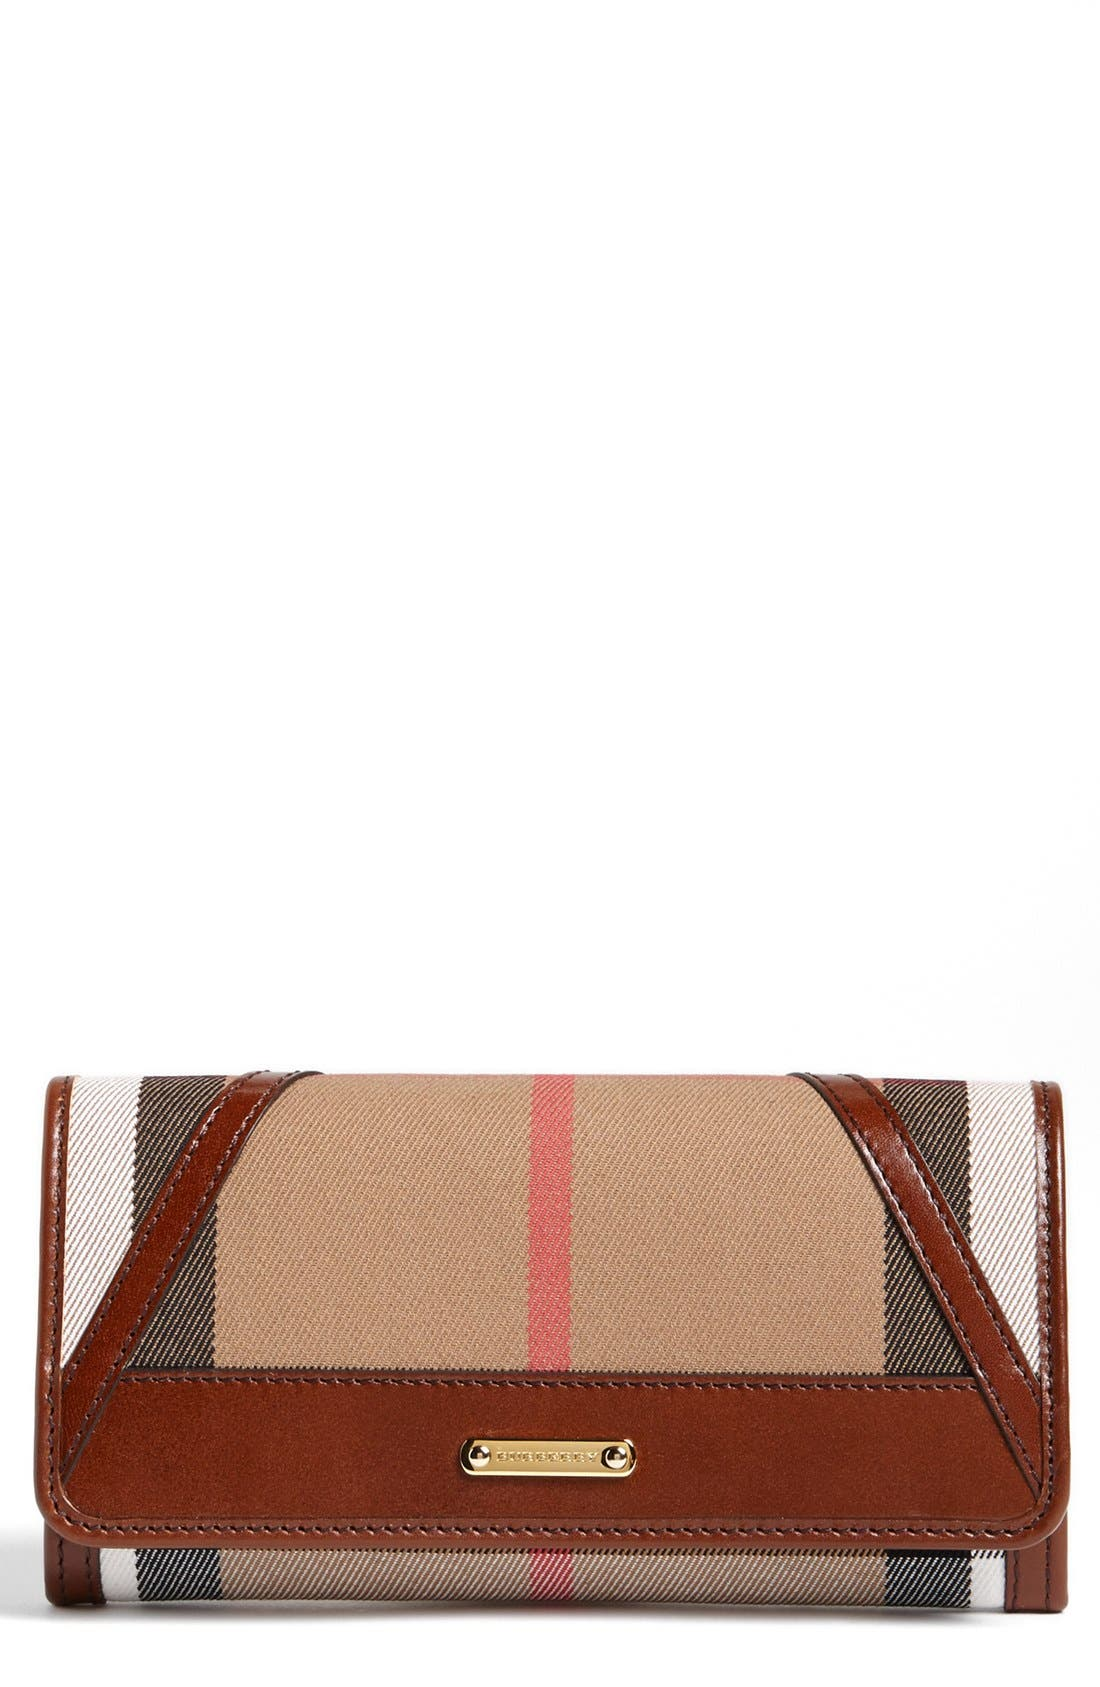 Main Image - Burberry 'Penrose' Checkbook Wallet